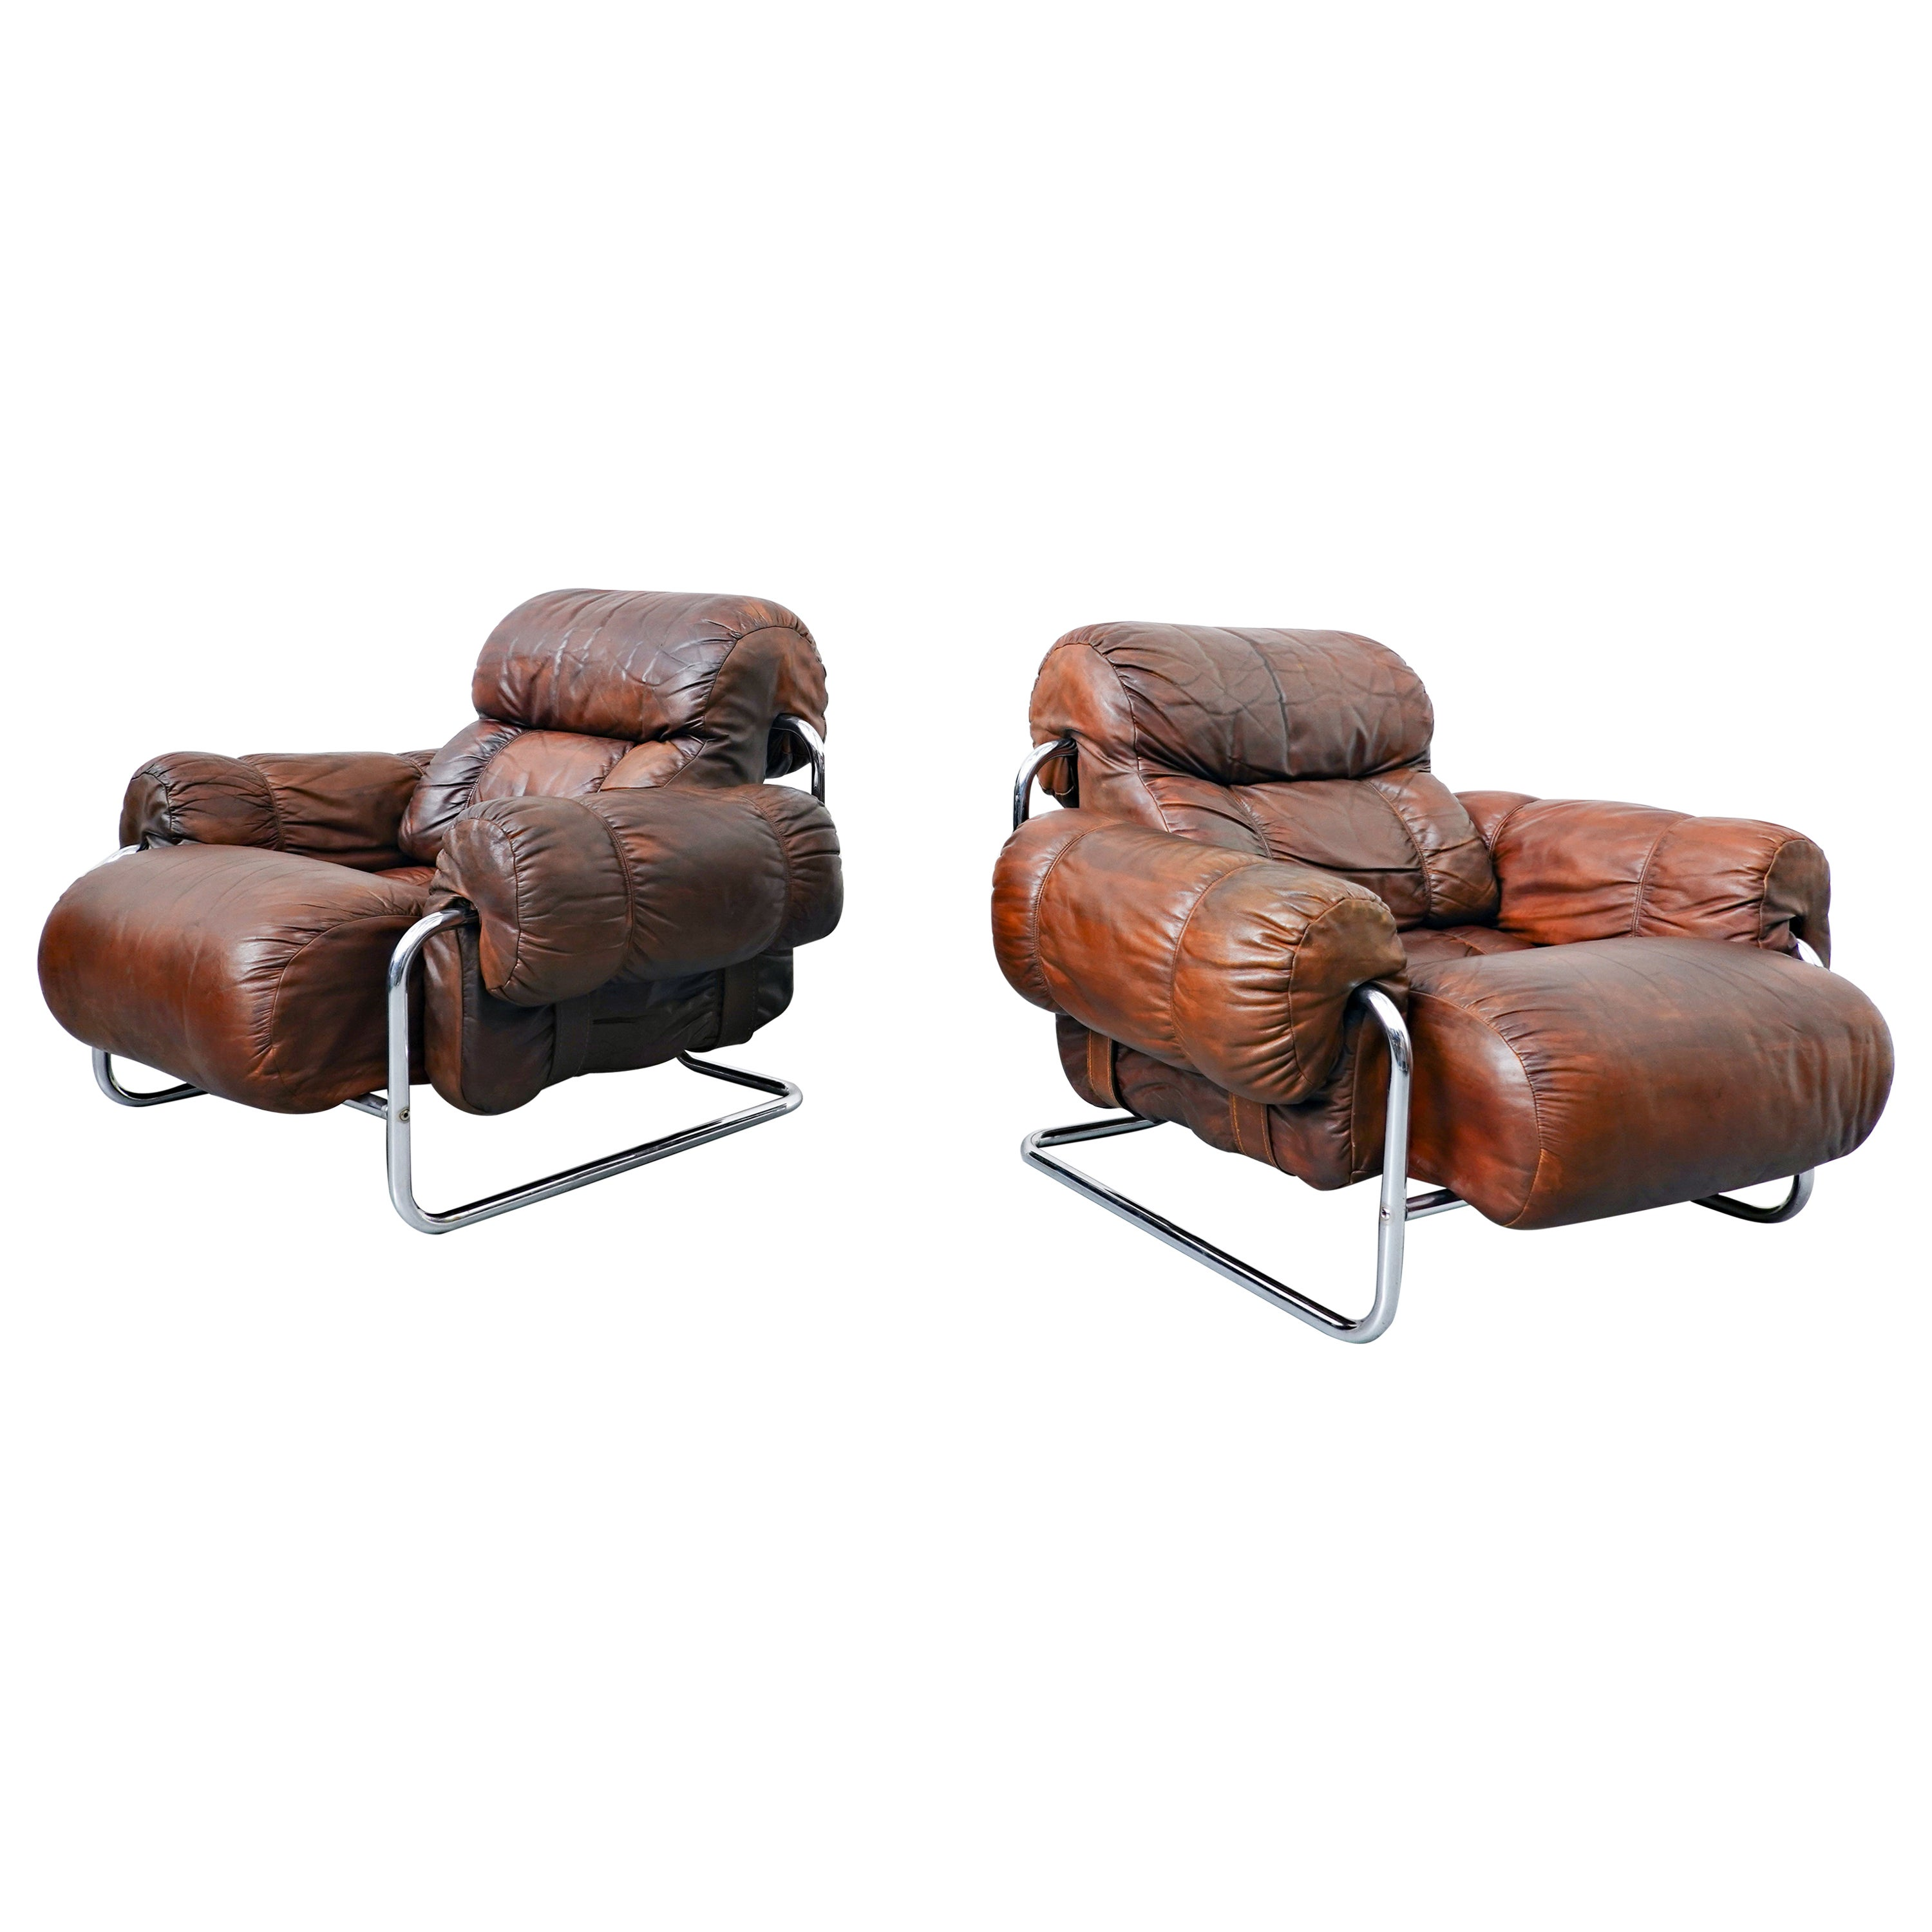 """Pair of Italian """"Tucroma"""" Armchairs by Guido Faleschini for Mariani, 1970s"""